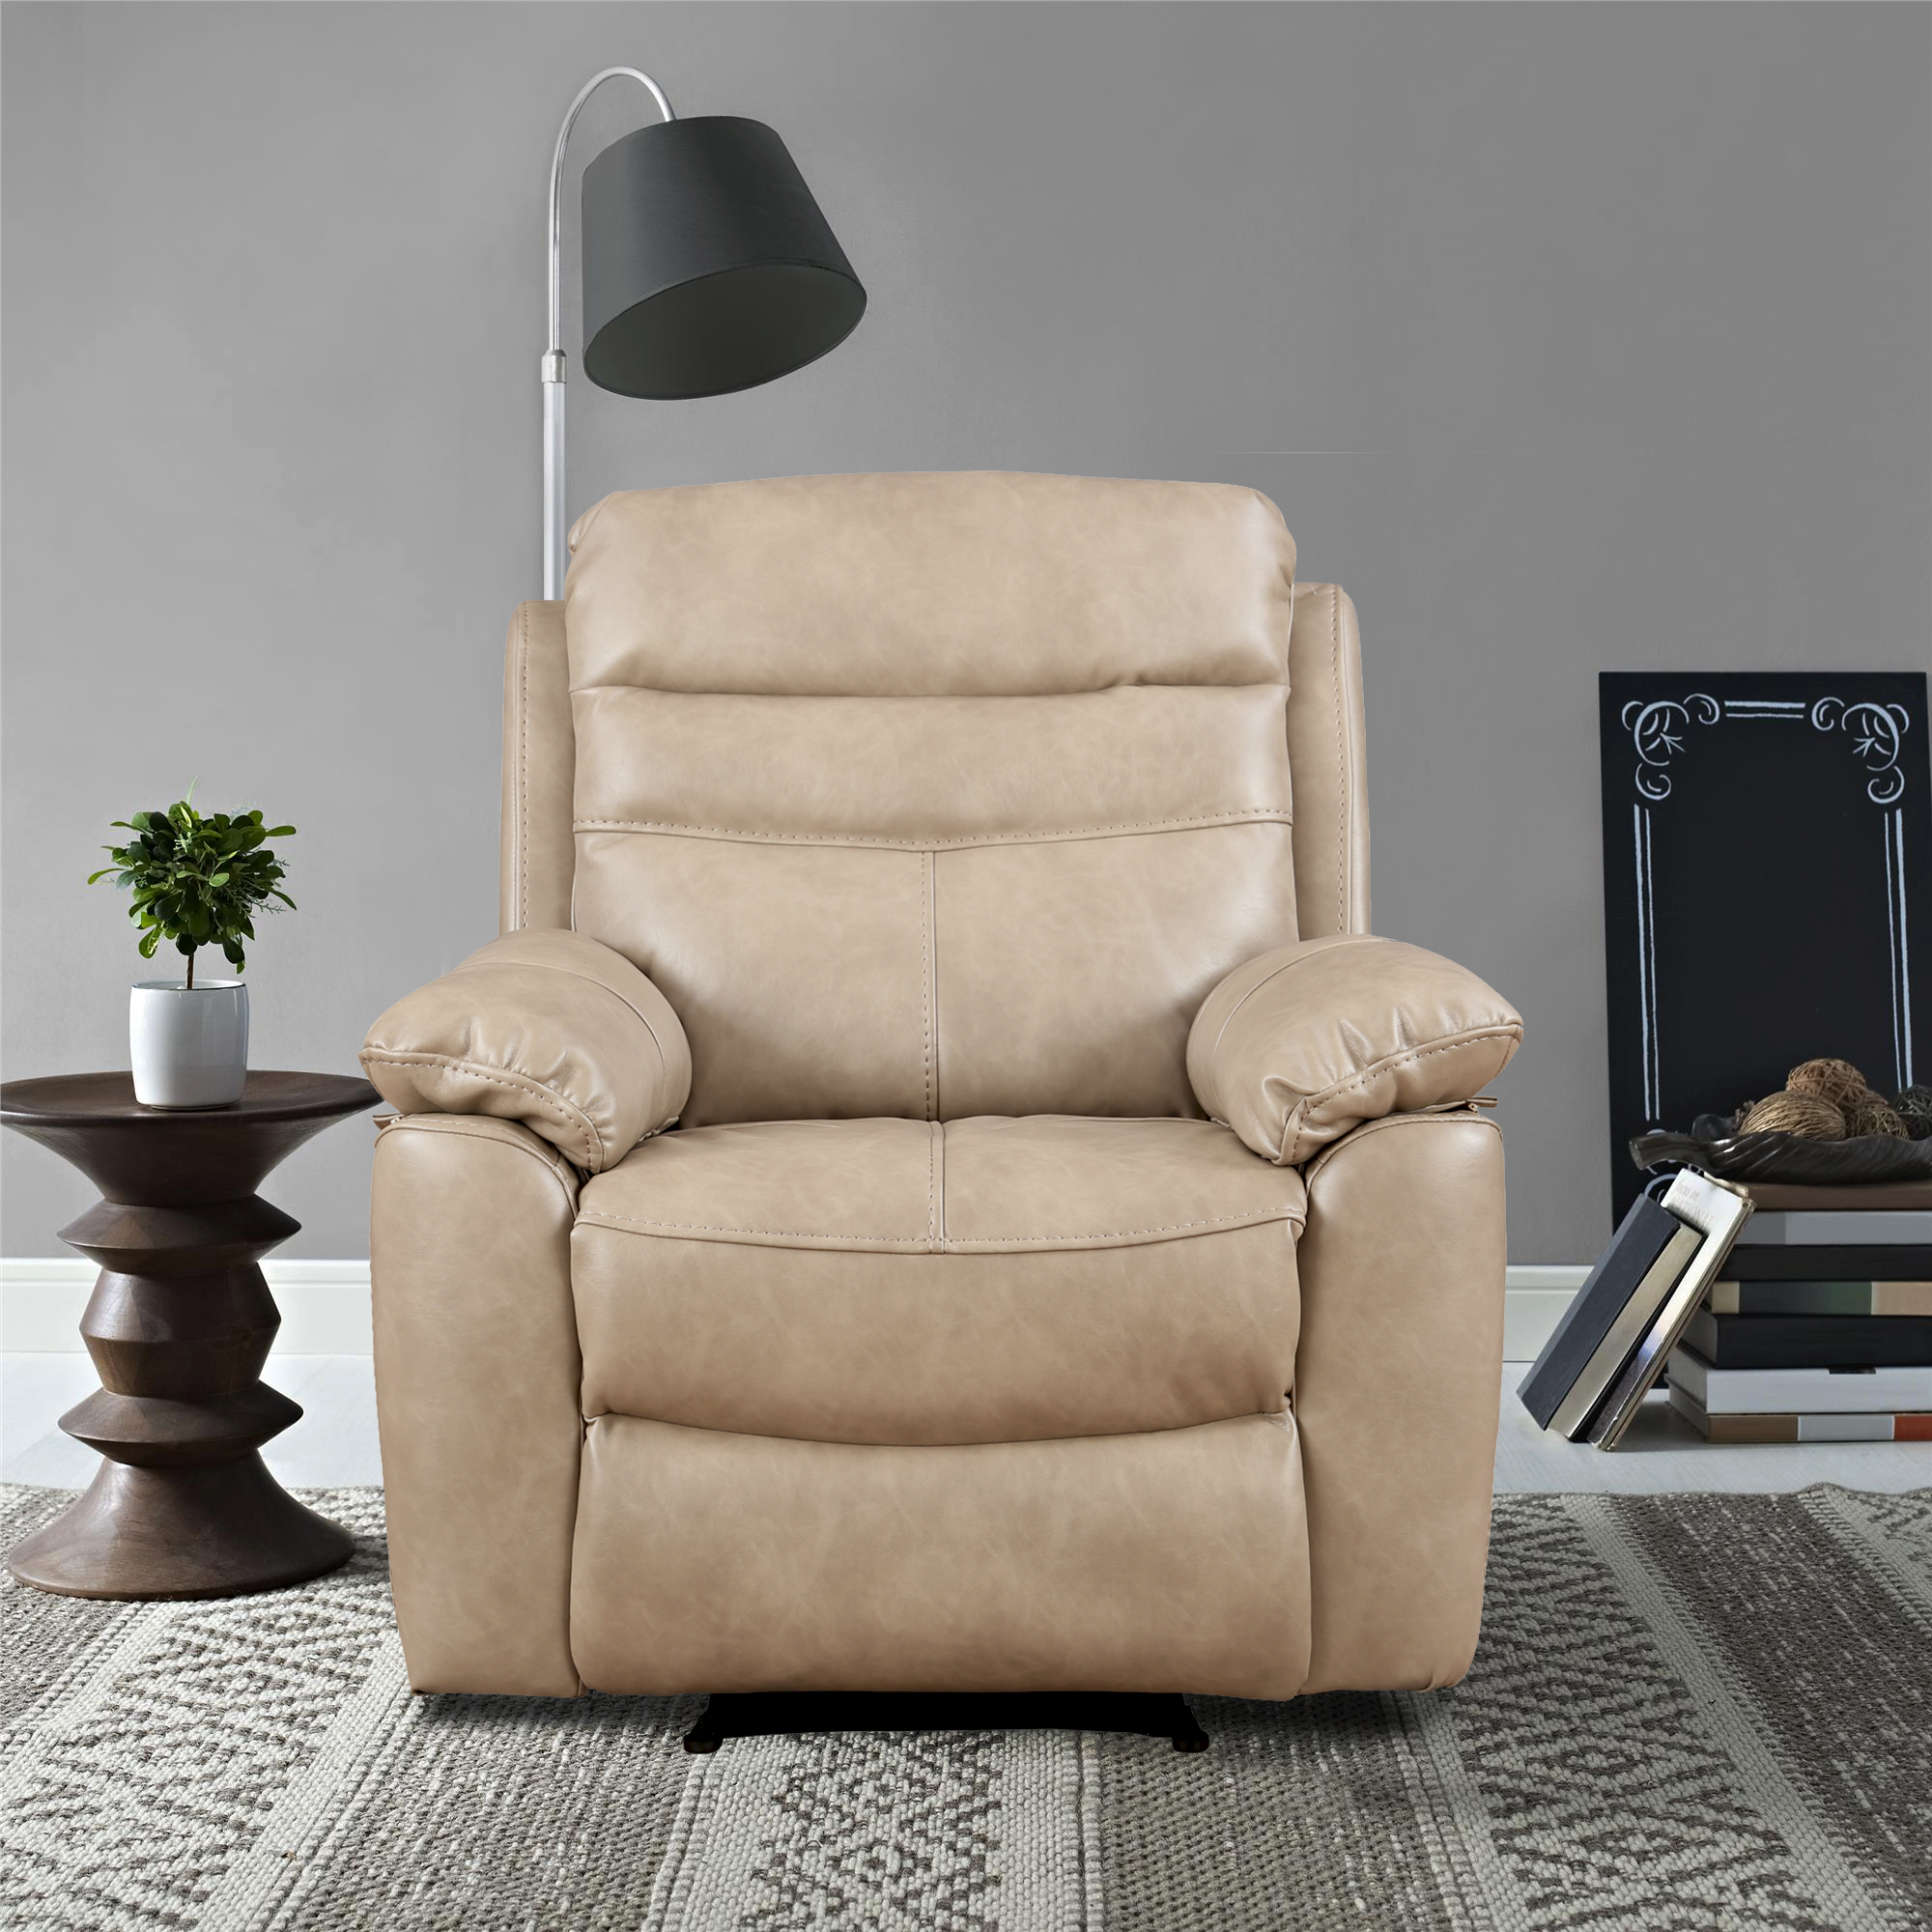 Logan Nappa Aire Single Seater Recliner in Grey Colour by HomeTown